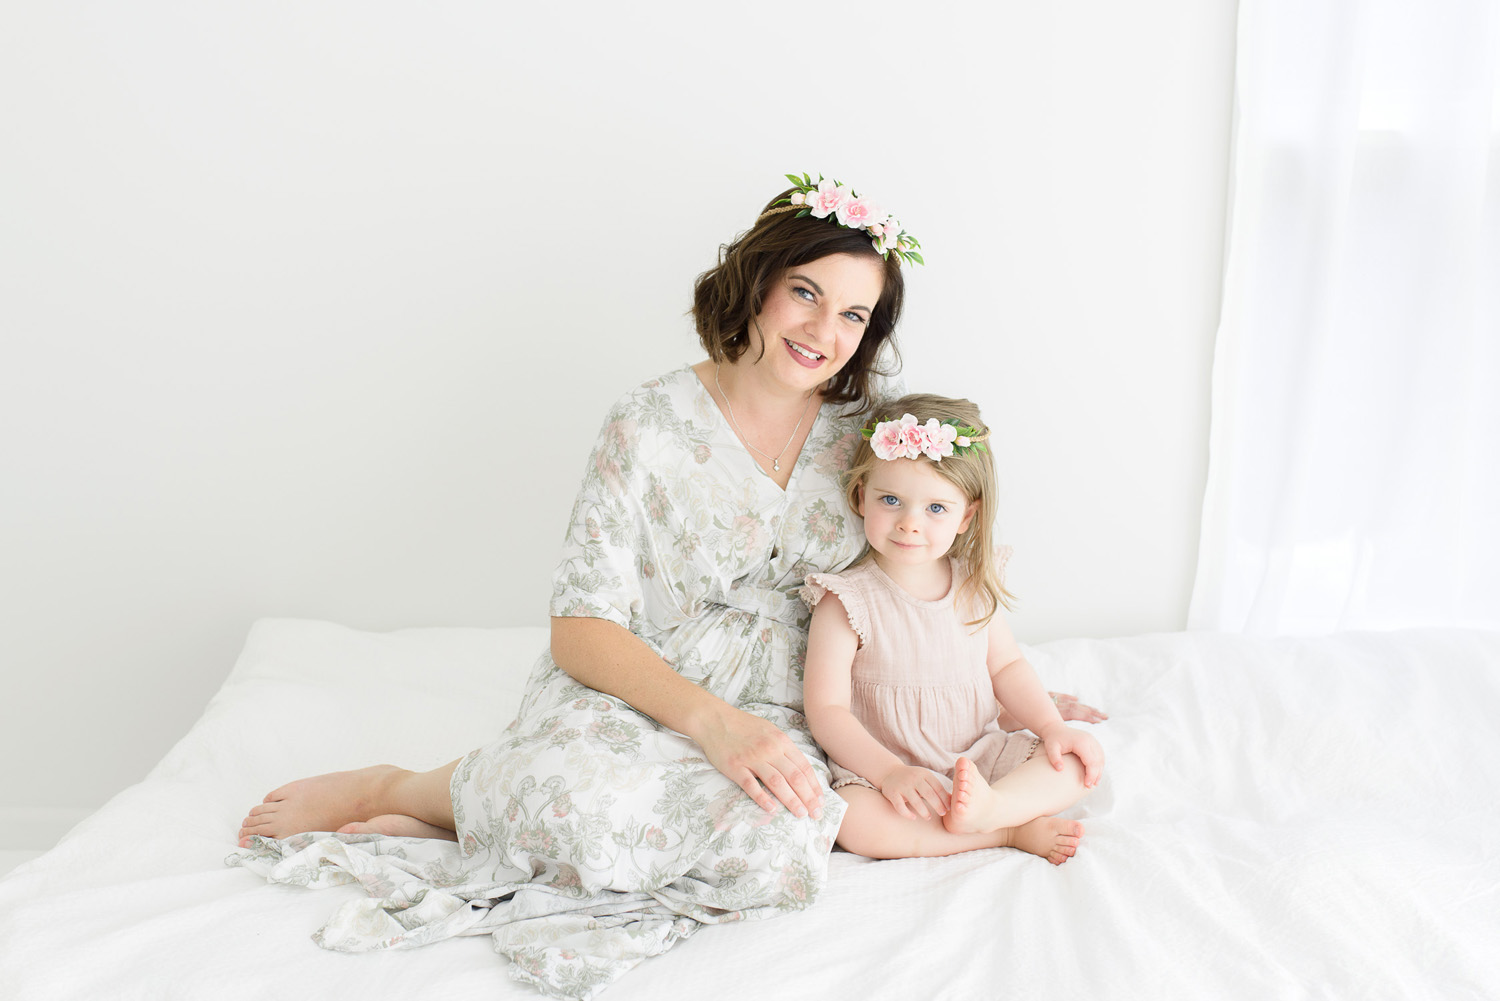 Mother and daughter sitting on bed wearing flower crowns and smiling at camera during sutherland shire baby photography session in Sevenish Photography studio